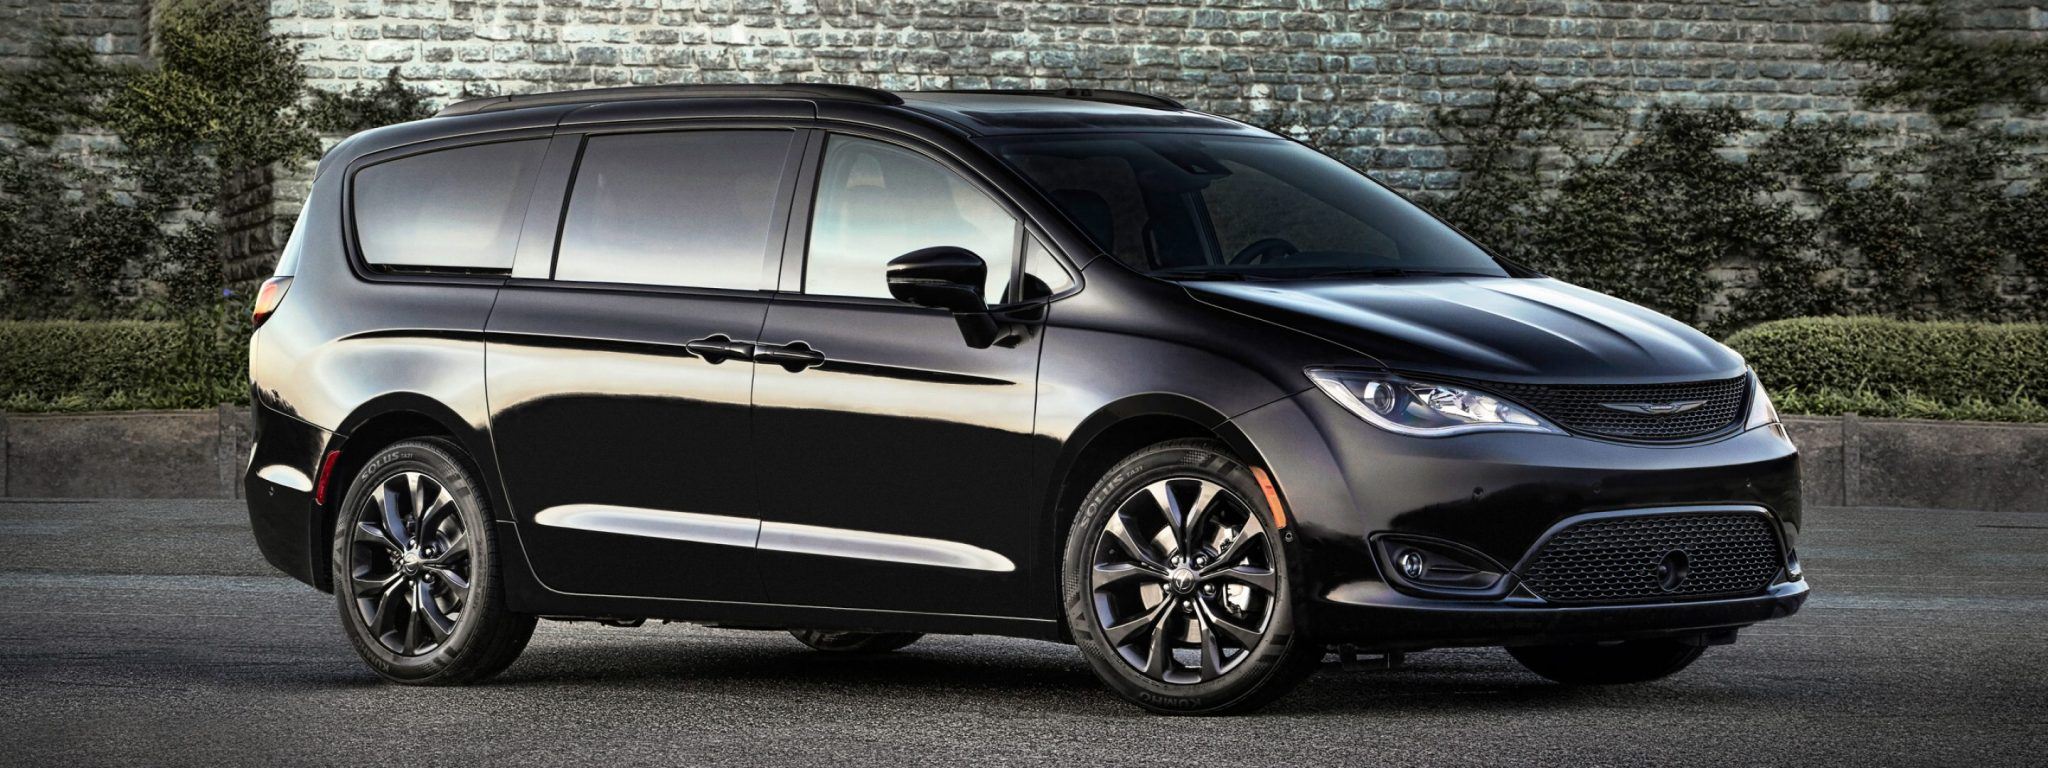 2019 Toyota Sienna Hybrid Review additionally 2018 Mclaren 720s Velocity By Mso Interior as well Unprecedented Safety Tesla Model S Action Crashed Semitruck Trailer Lifted Off Ground Yet Driver Walked Away Independently further Opel Ascona B 2 further 2019 Toyota Rav4 Dashboard 2. on chrysler pacifica interior